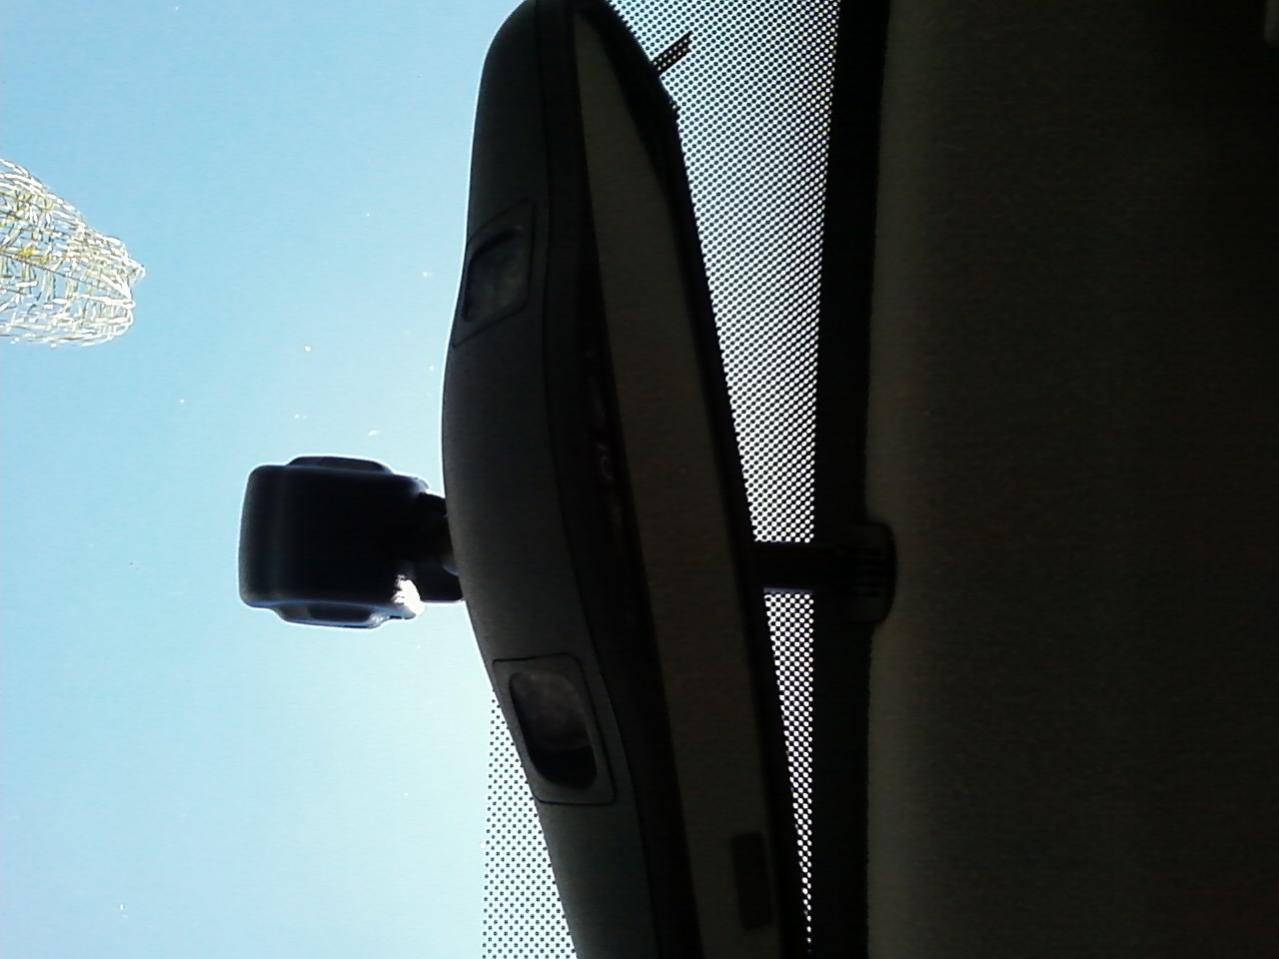 Sync Rearview Mirror Replacement-0501001333.jpg